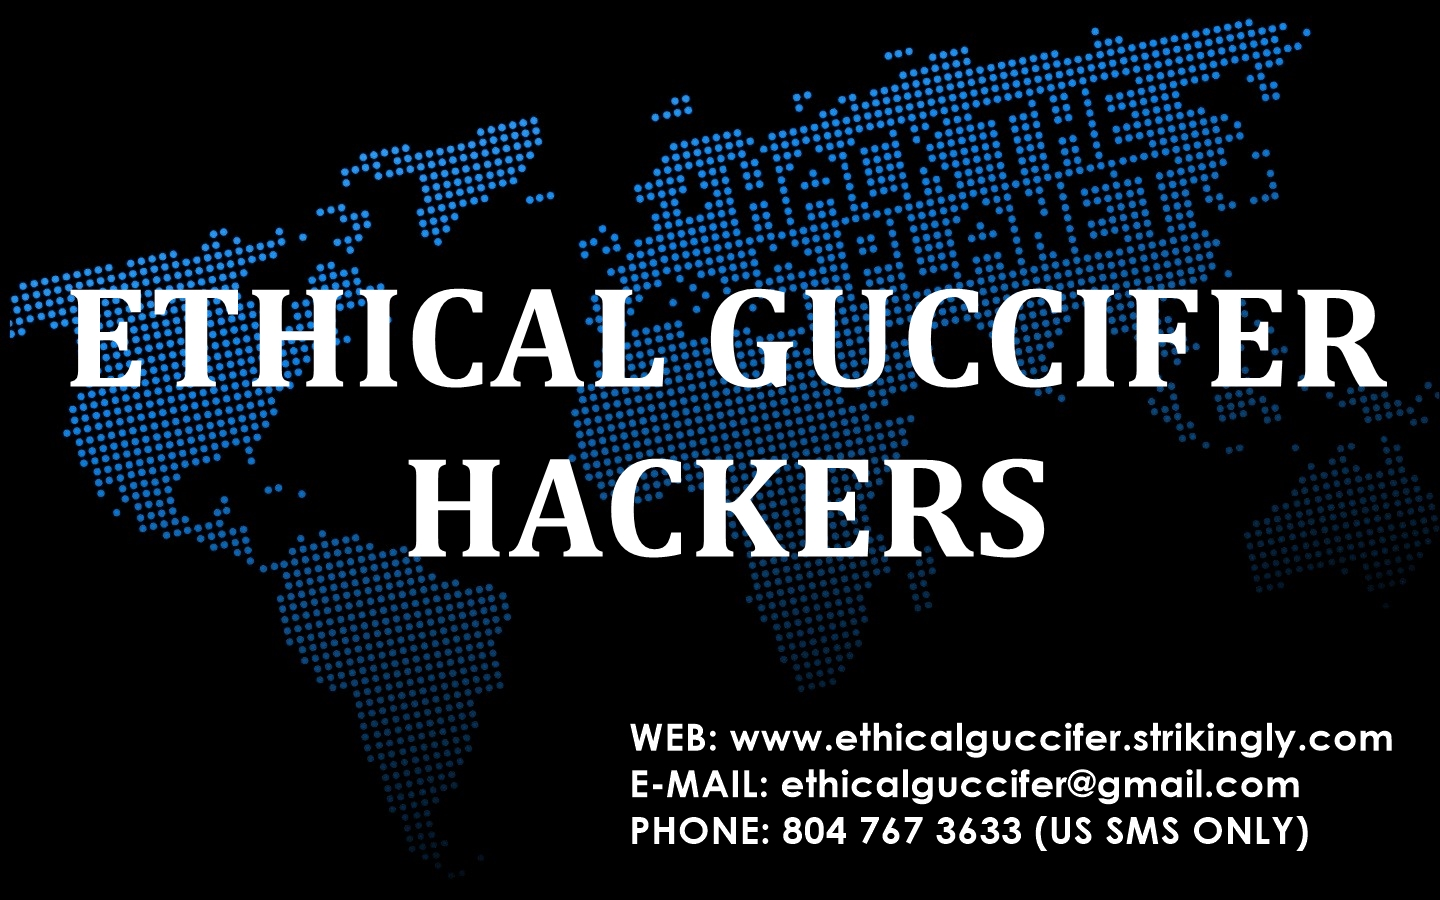 i'm guessing with confidence that this is the best ethical hacker right now